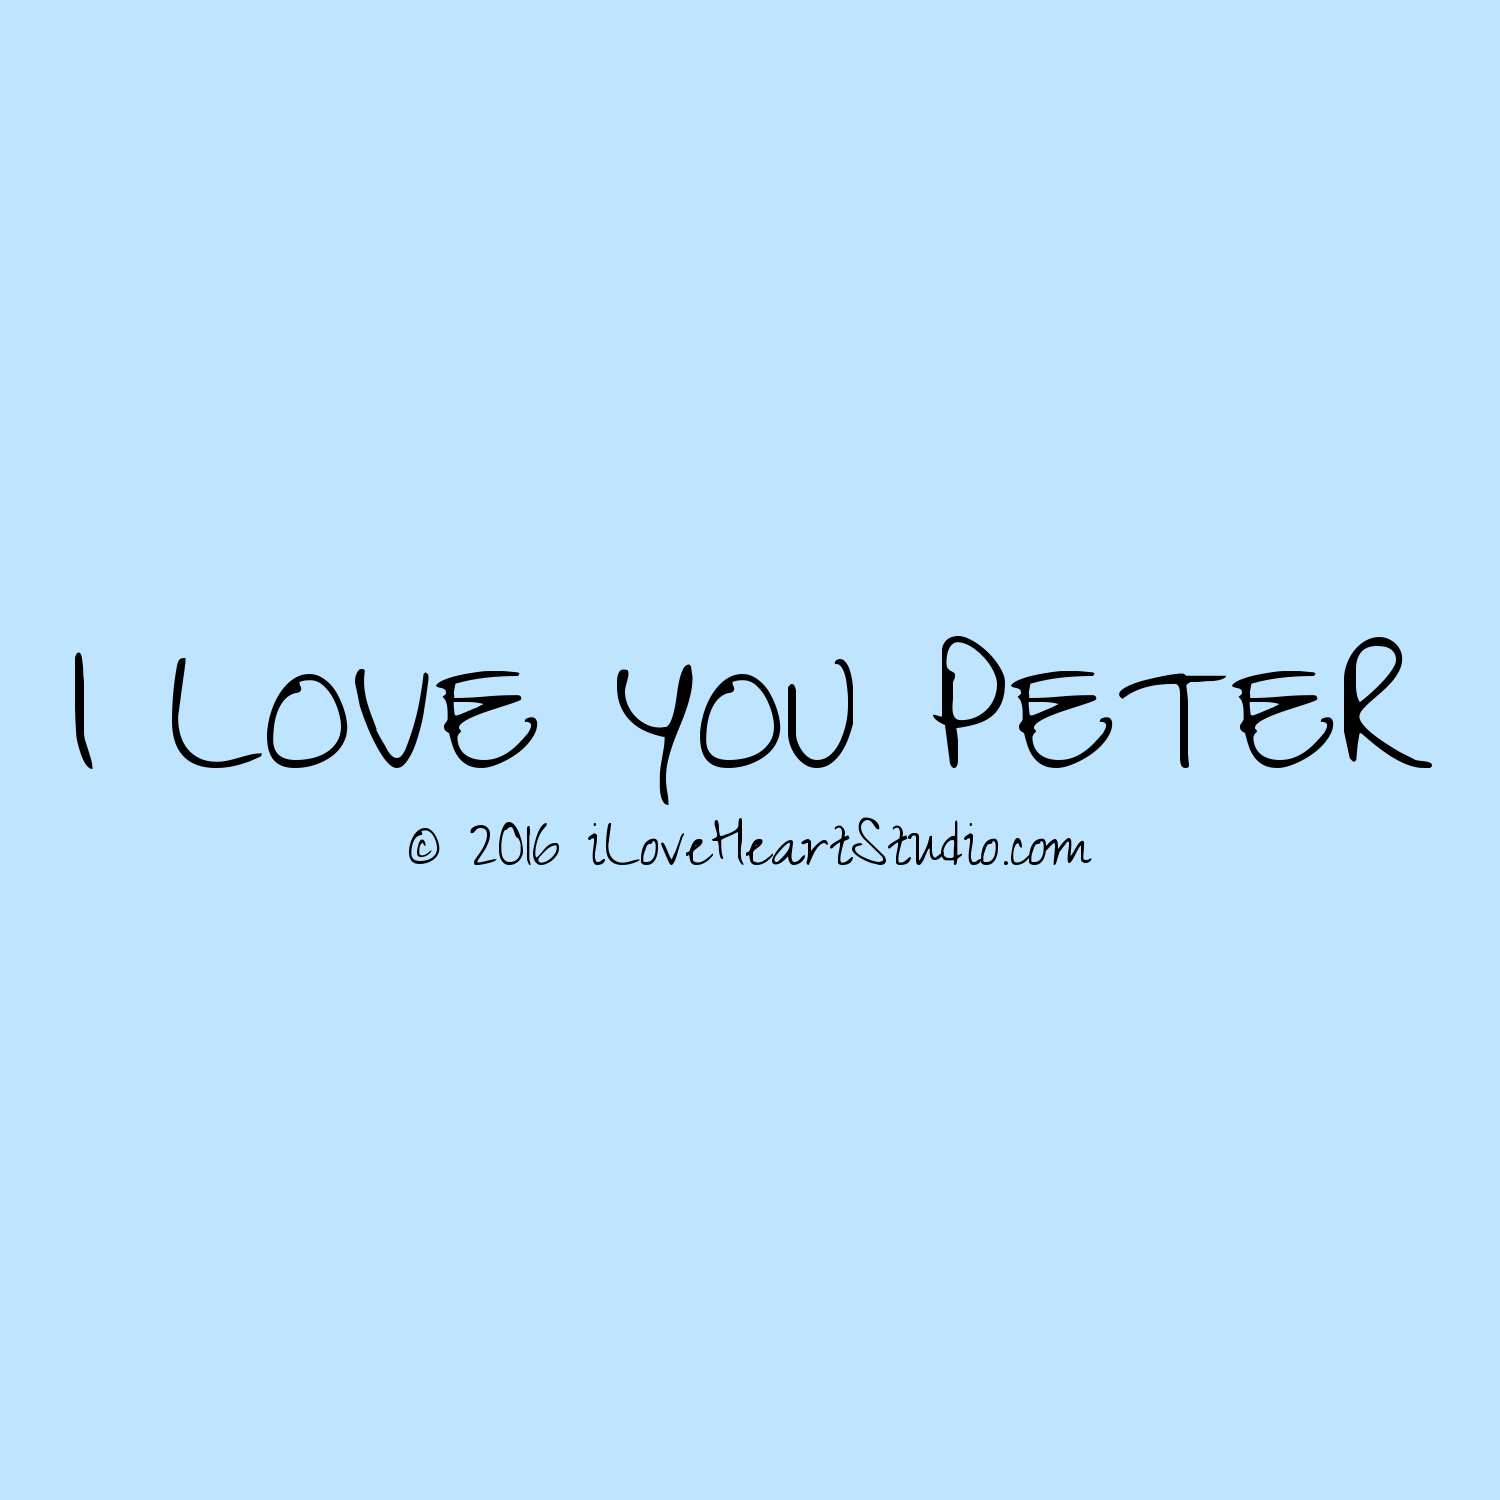 Peter, I love you